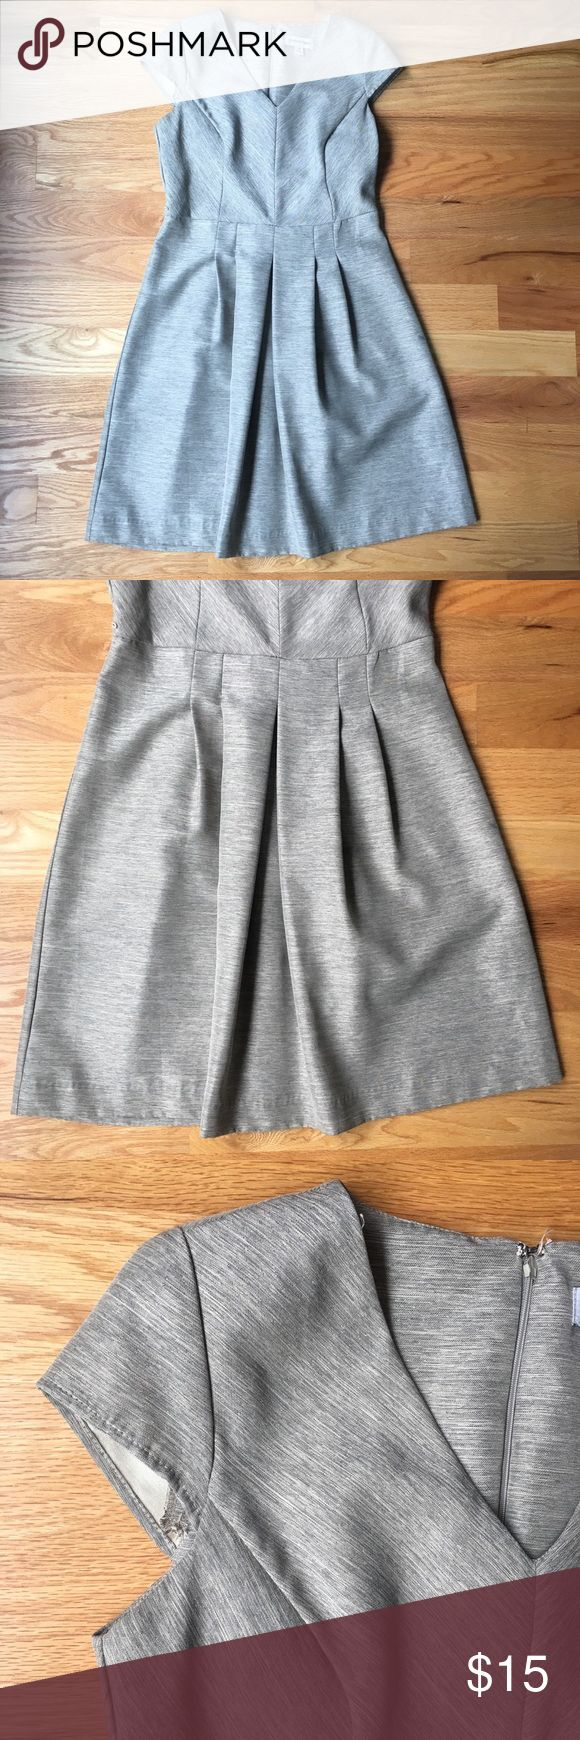 """Pleated gray dress About: · brand: Shelby & Palmer · size: 10 · pleated skirt · zips in the back · v-neck · very short capped sleeves · belt loops; belt is not included  Measurements: · bust: 36"""" · waist: 31"""" · length: 39""""  Flaws: · slight marking on the left side of skirt (right side when looking at the item) as seen in picture Shelby & Palmer Dresses"""